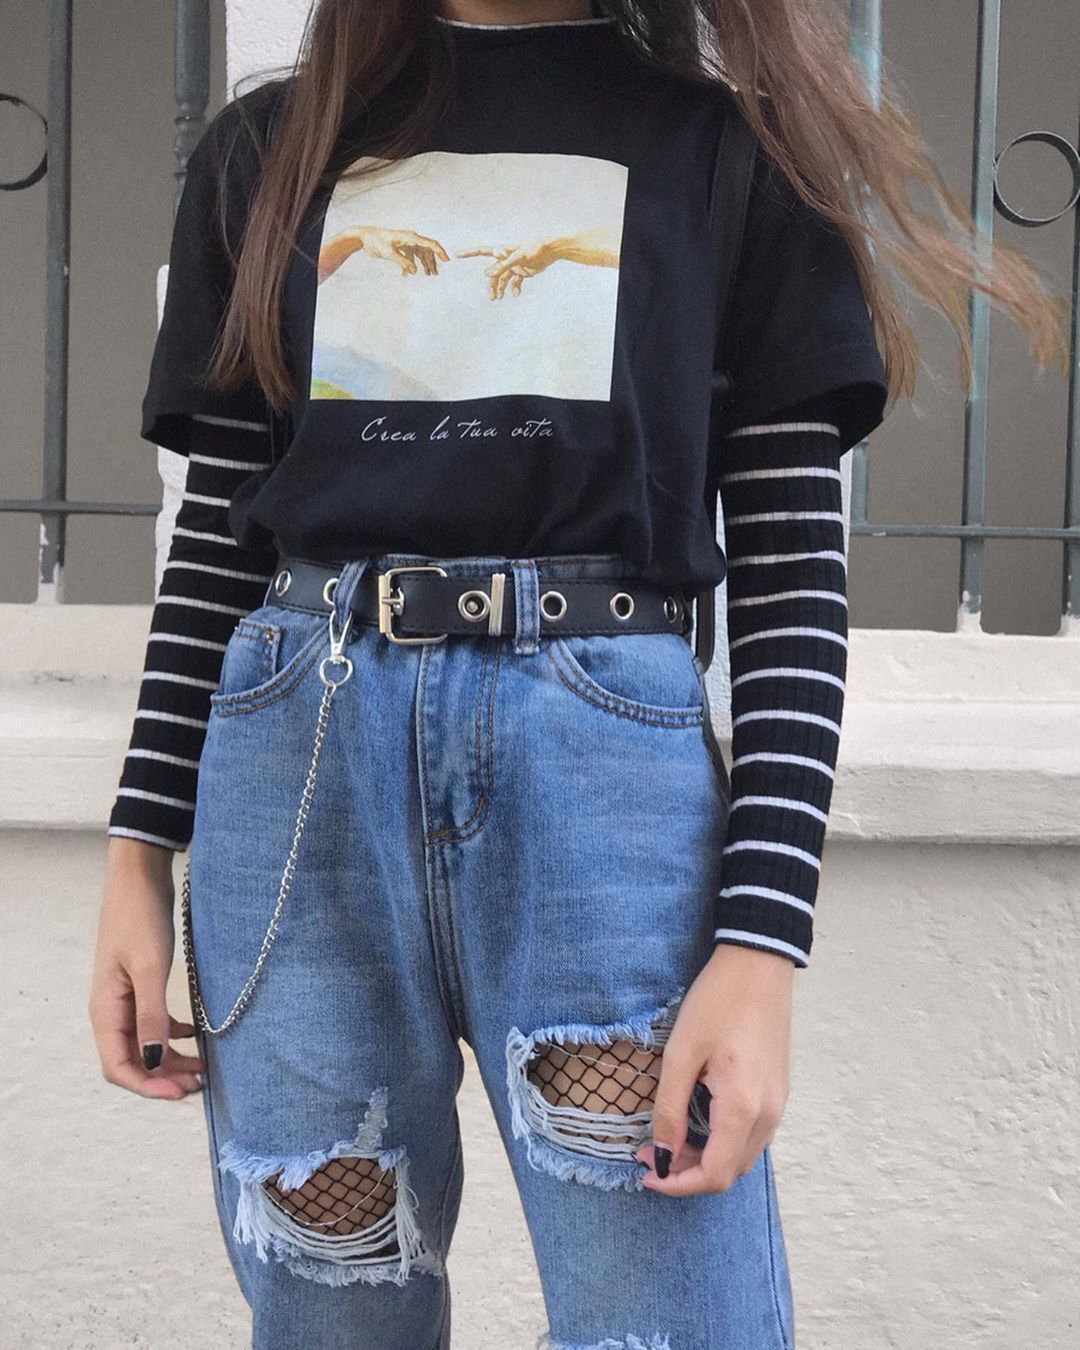 Cute Dresses Tops Shoes Jewelry Clothing For Women Edgyoutfits The Forbidden Truth Regarding Awesome Pretty In 2020 Retro Outfits Aesthetic Clothes Edgy Outfits